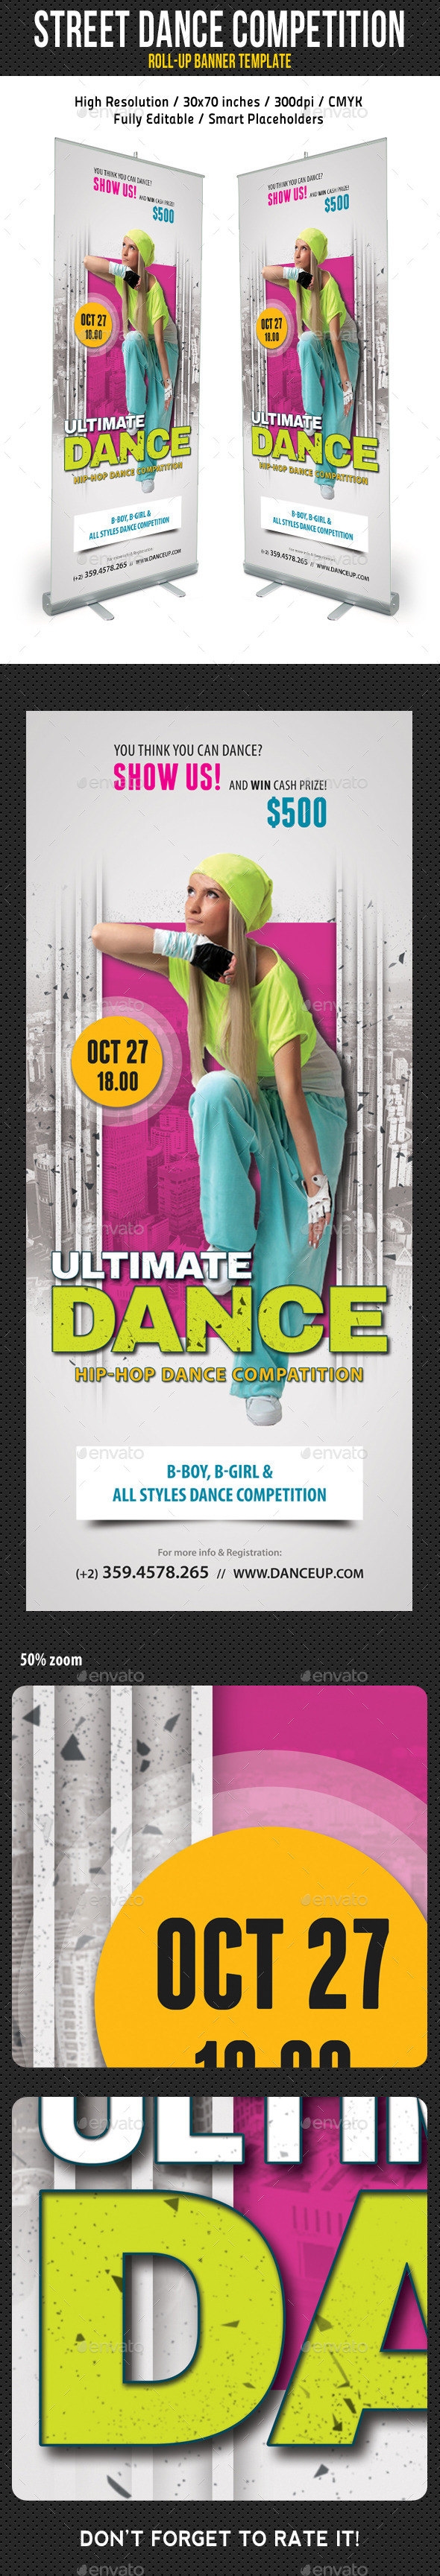 Street Dance Competition Banner